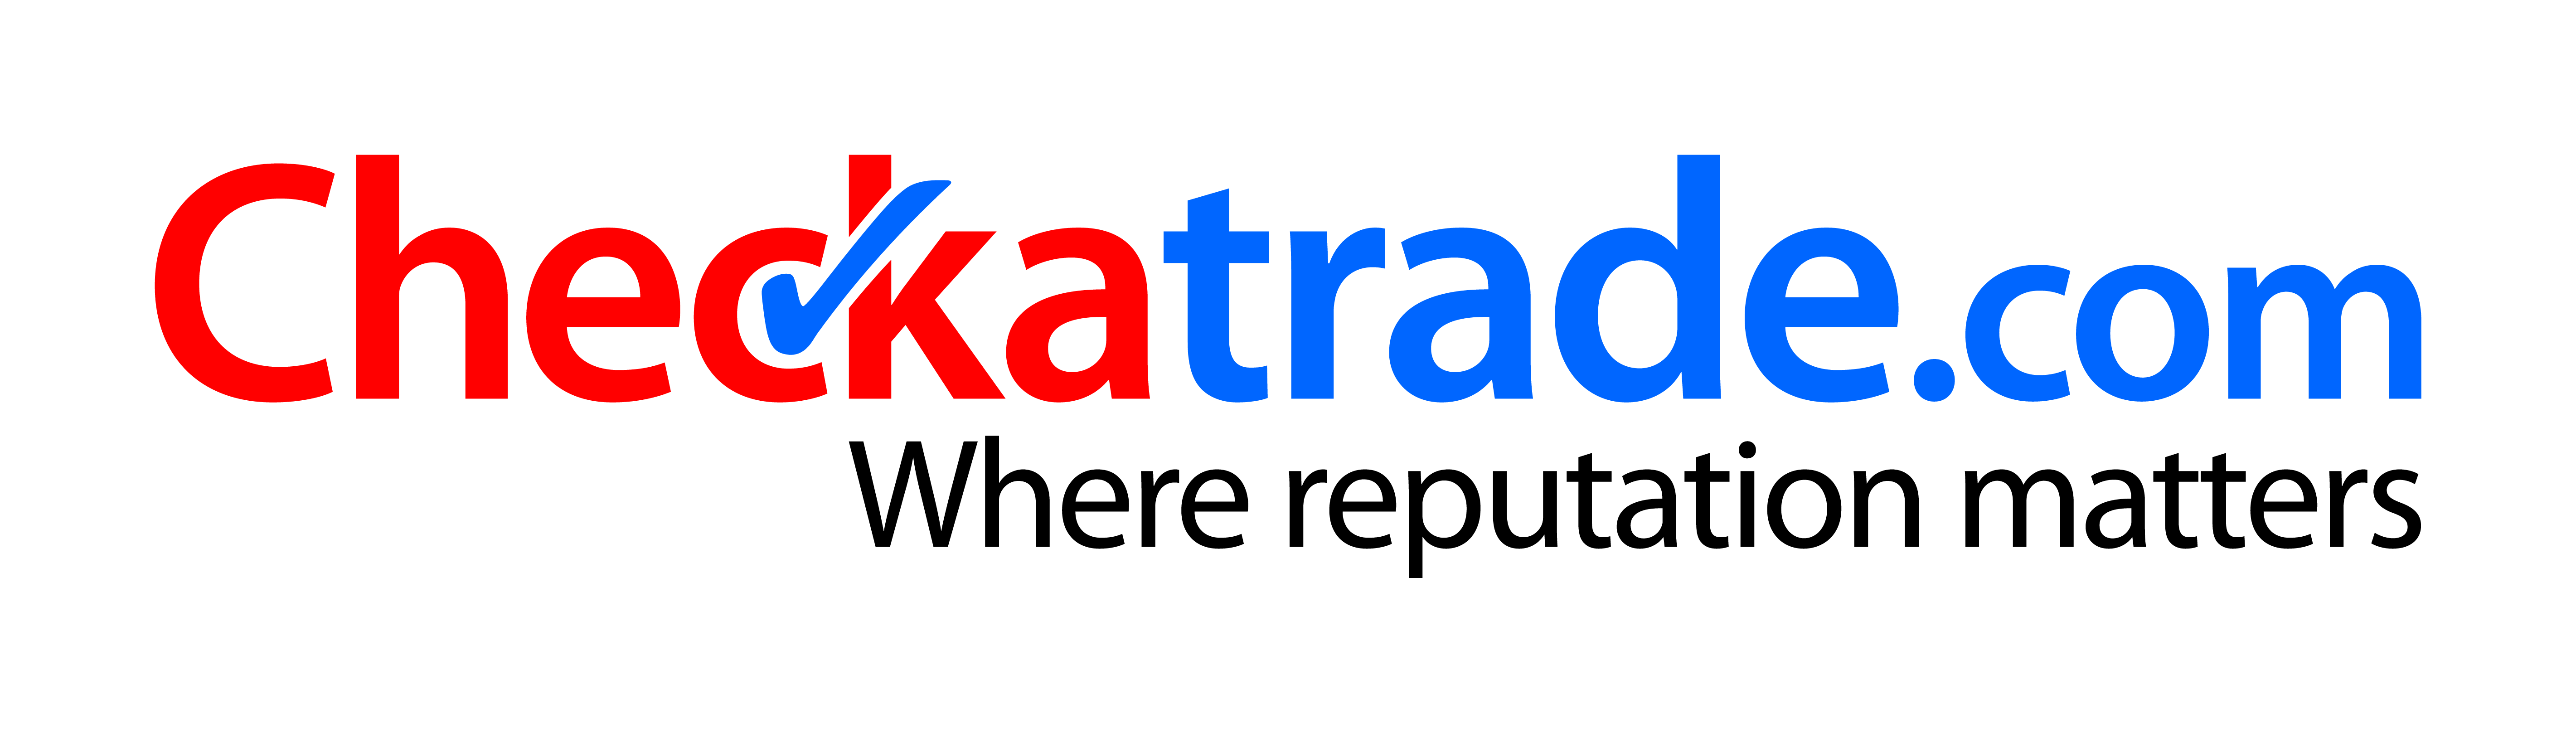 checkatrade.com where reputation matters